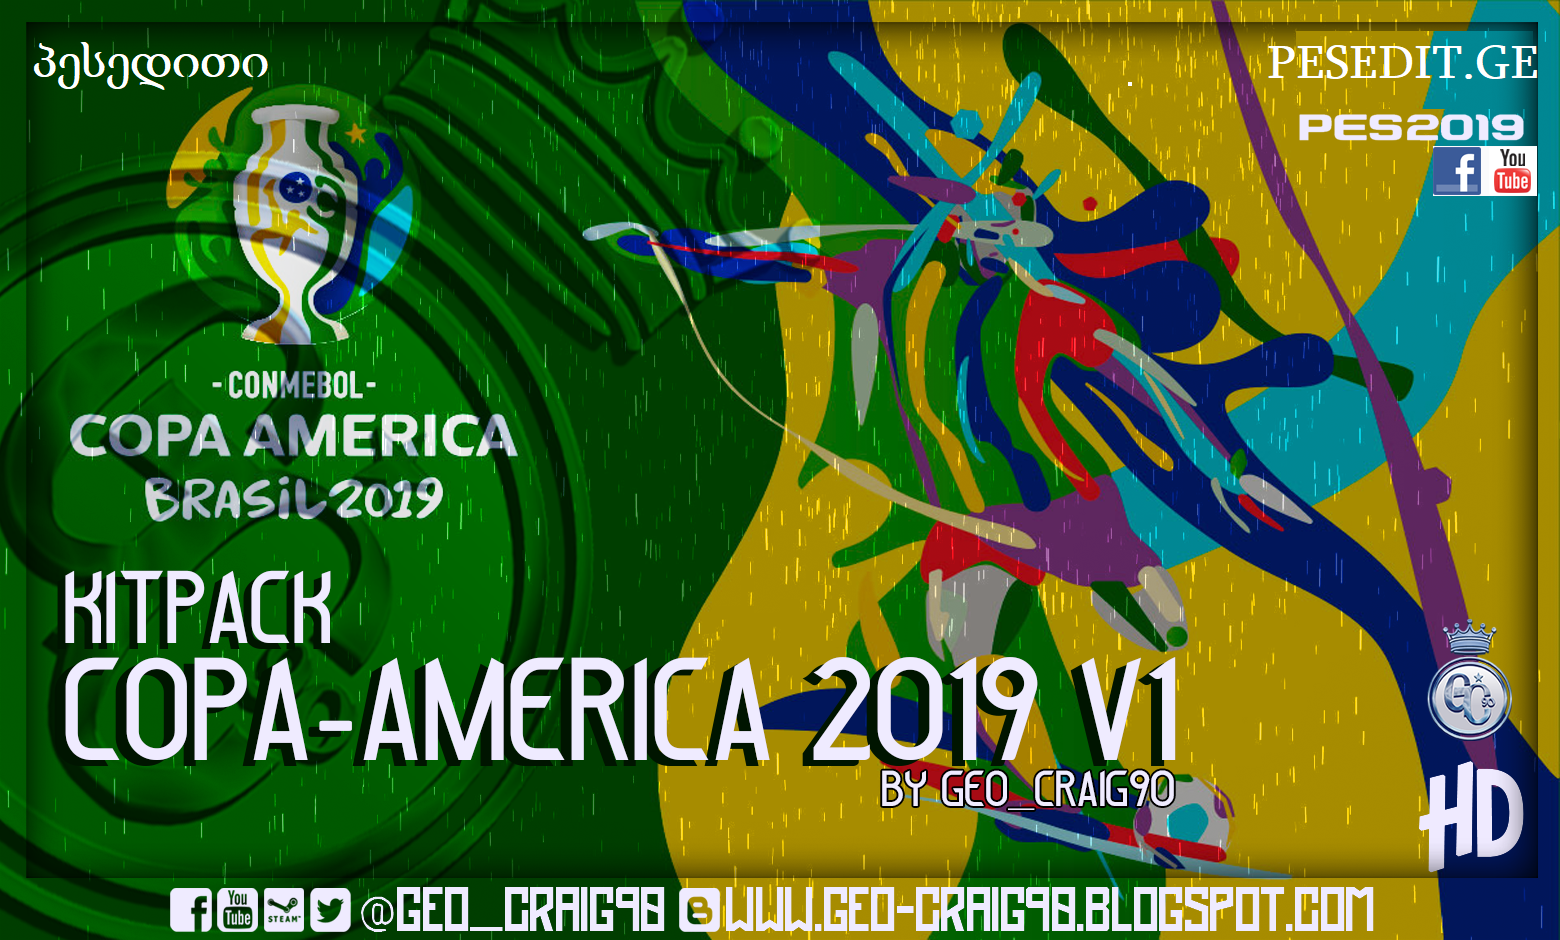 Kits Pack Copa America 2019 V.1 HD